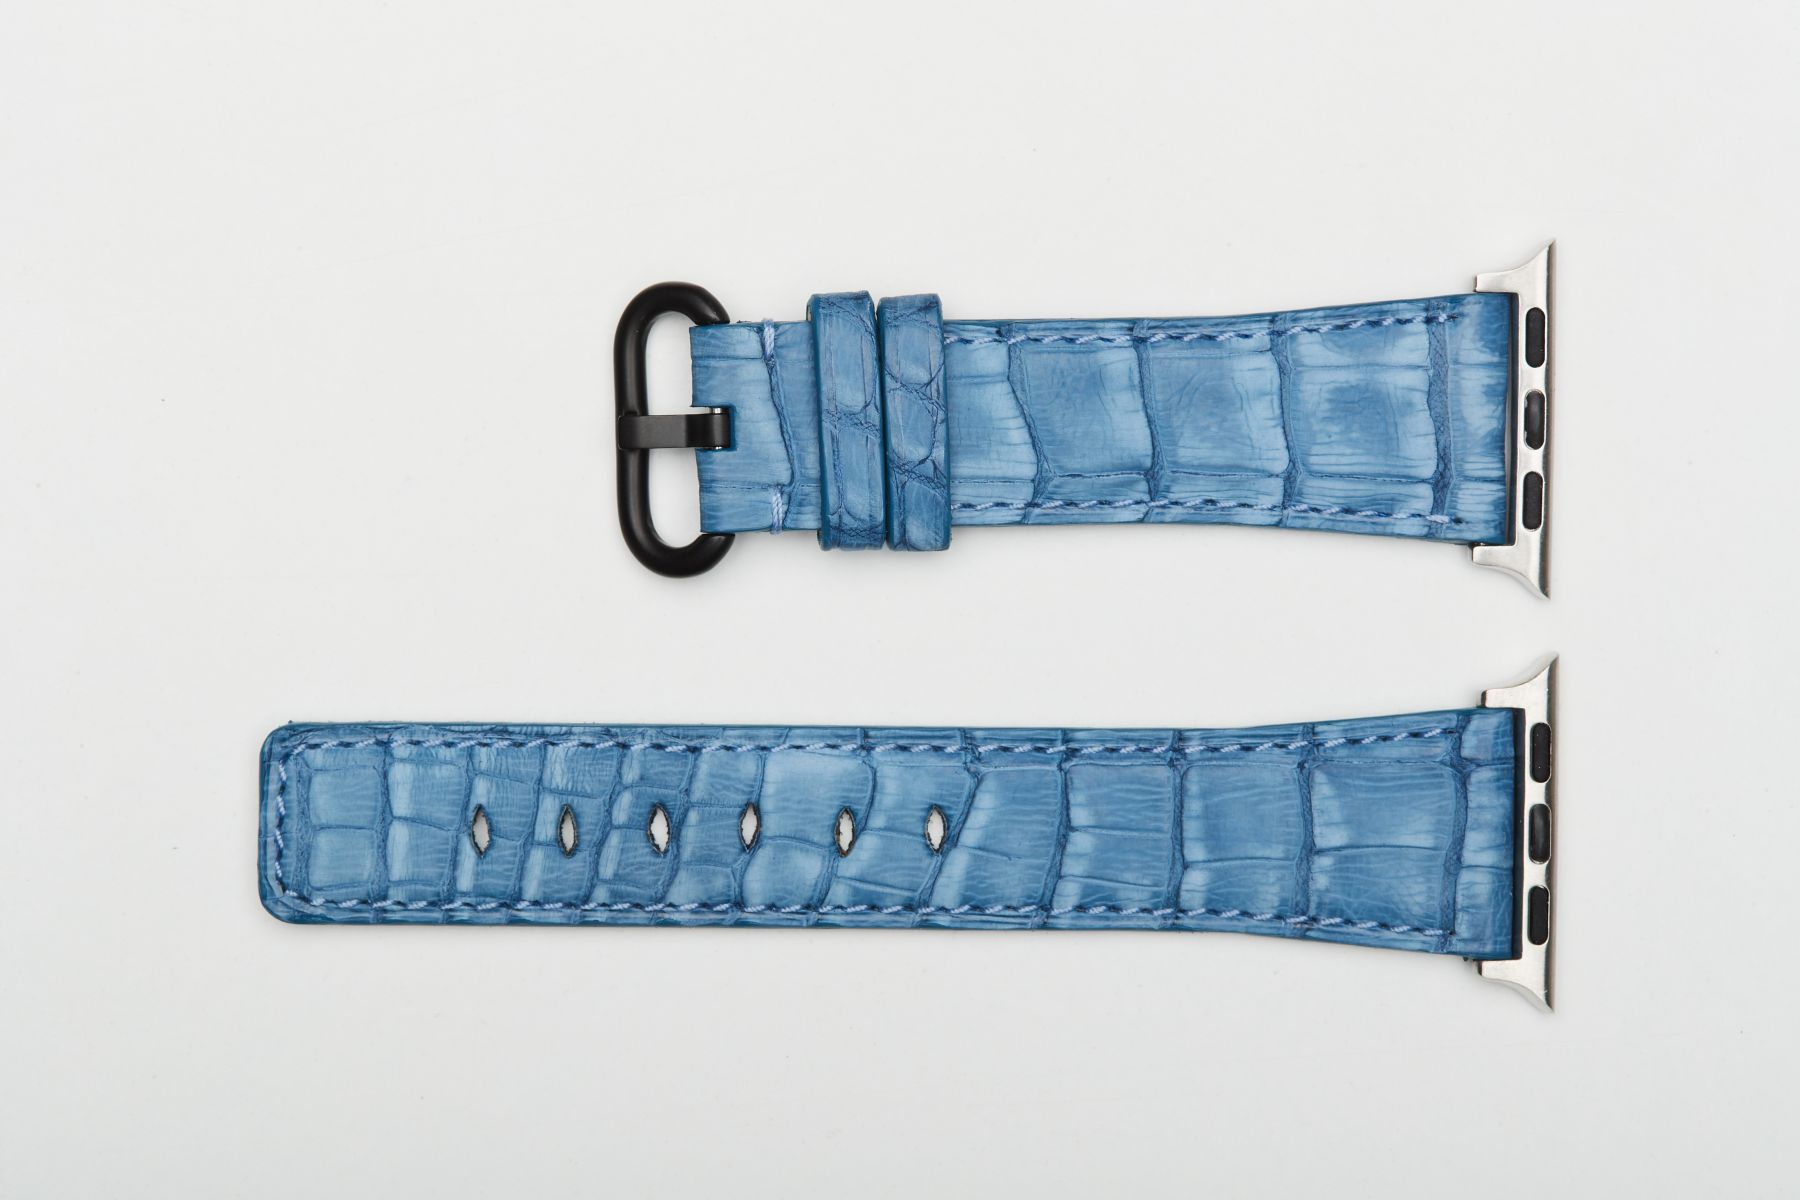 Jeans Nubuck Caiman Latirostris leather watch strap for Apple Watch 40mm, 38mm (All generations).